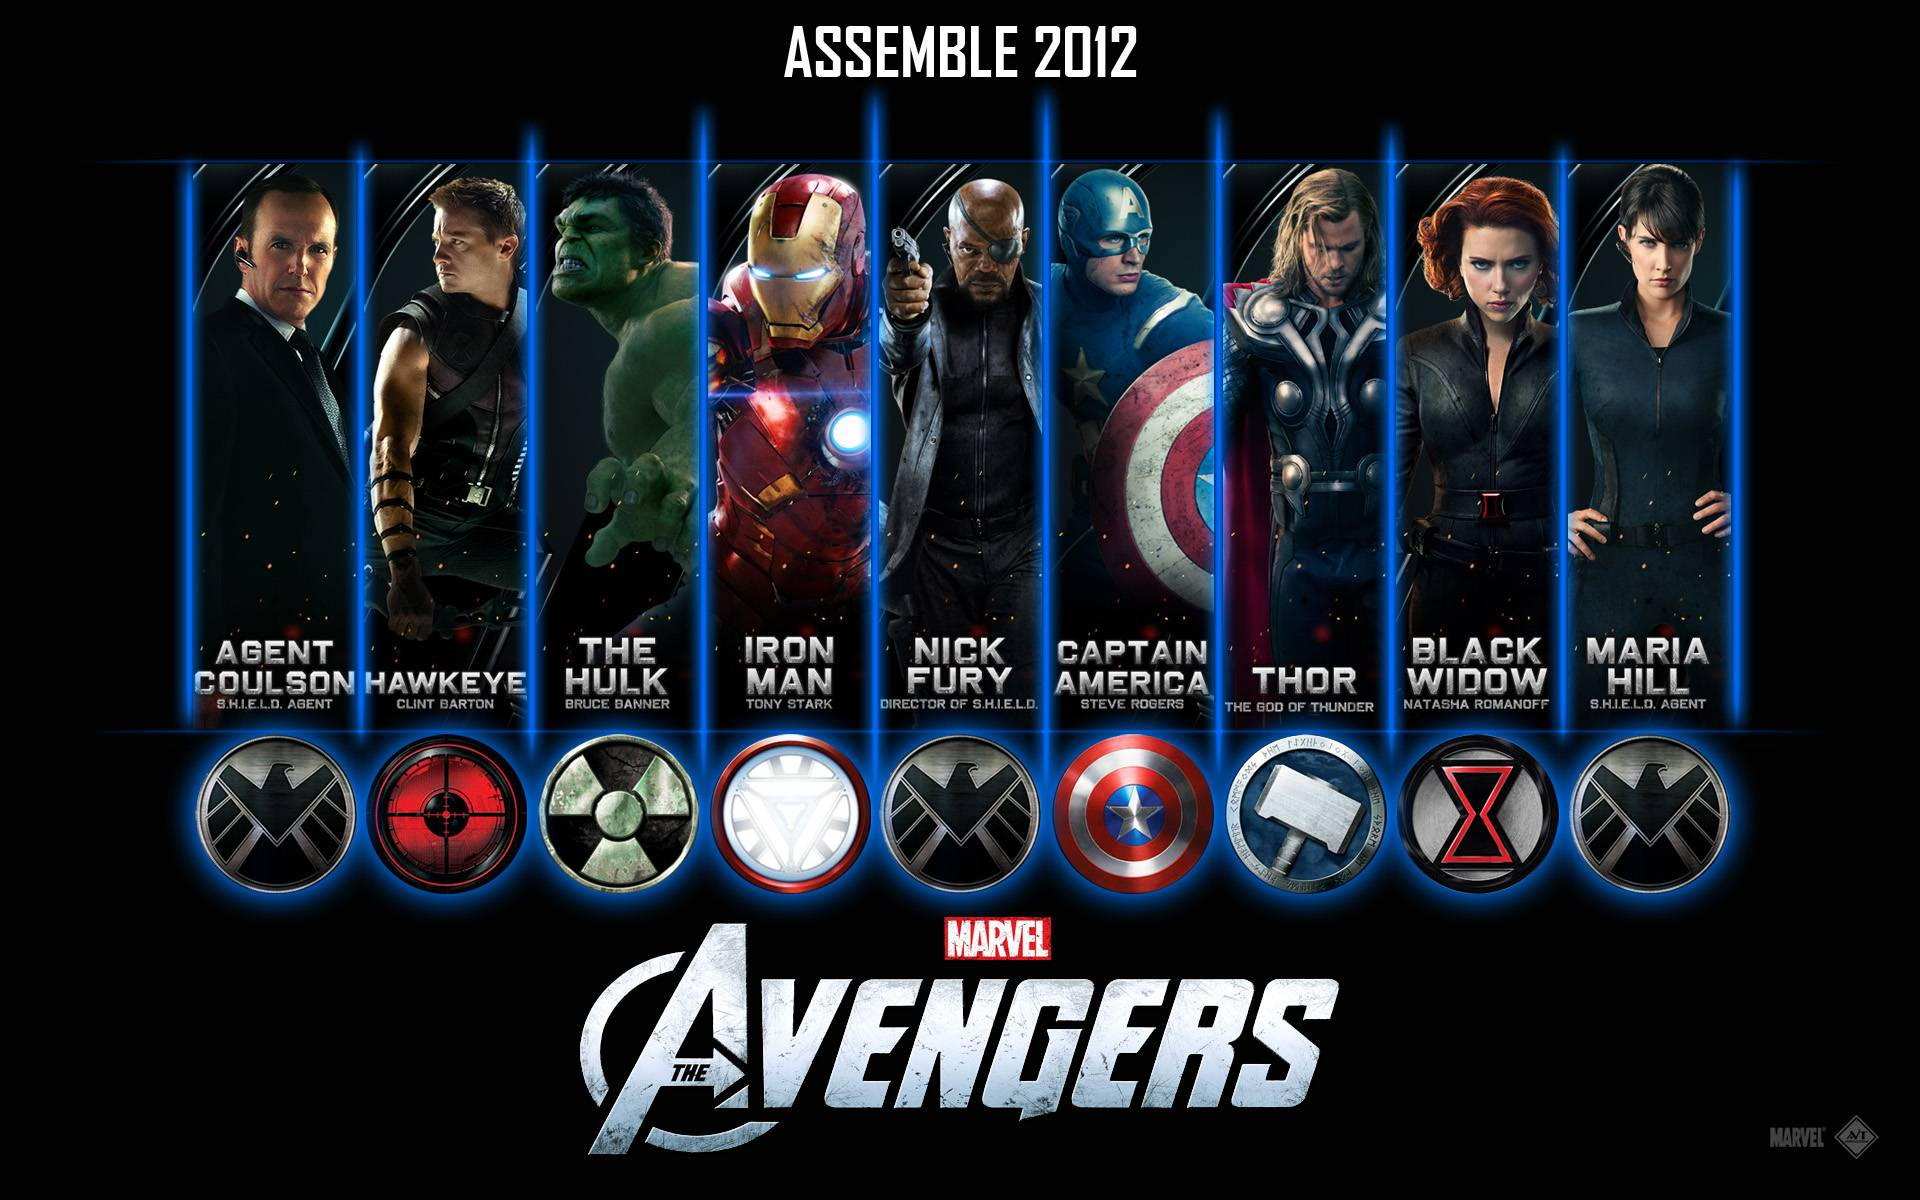 Avengers Movie 2012 Wallpaper